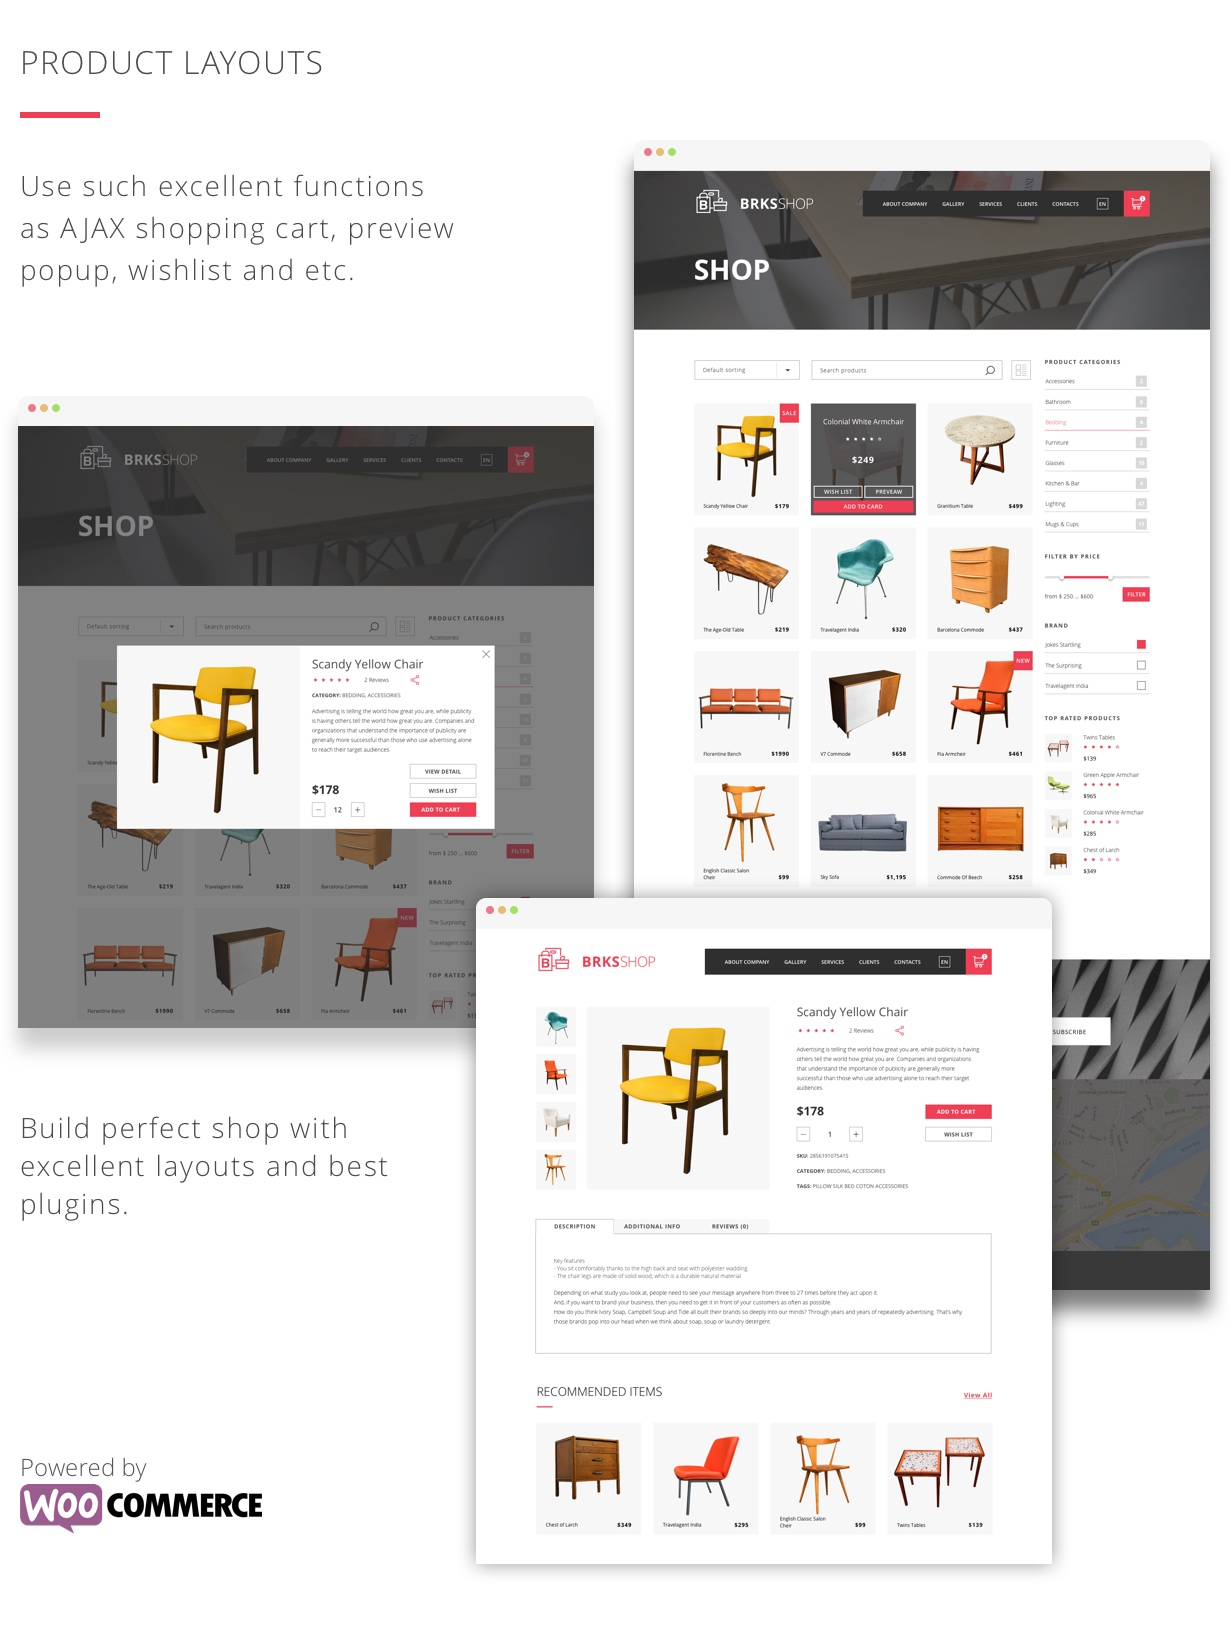 Product layouts. Use such excellent functions as AJAX shopping cart, preview popup, wishlist and etc.